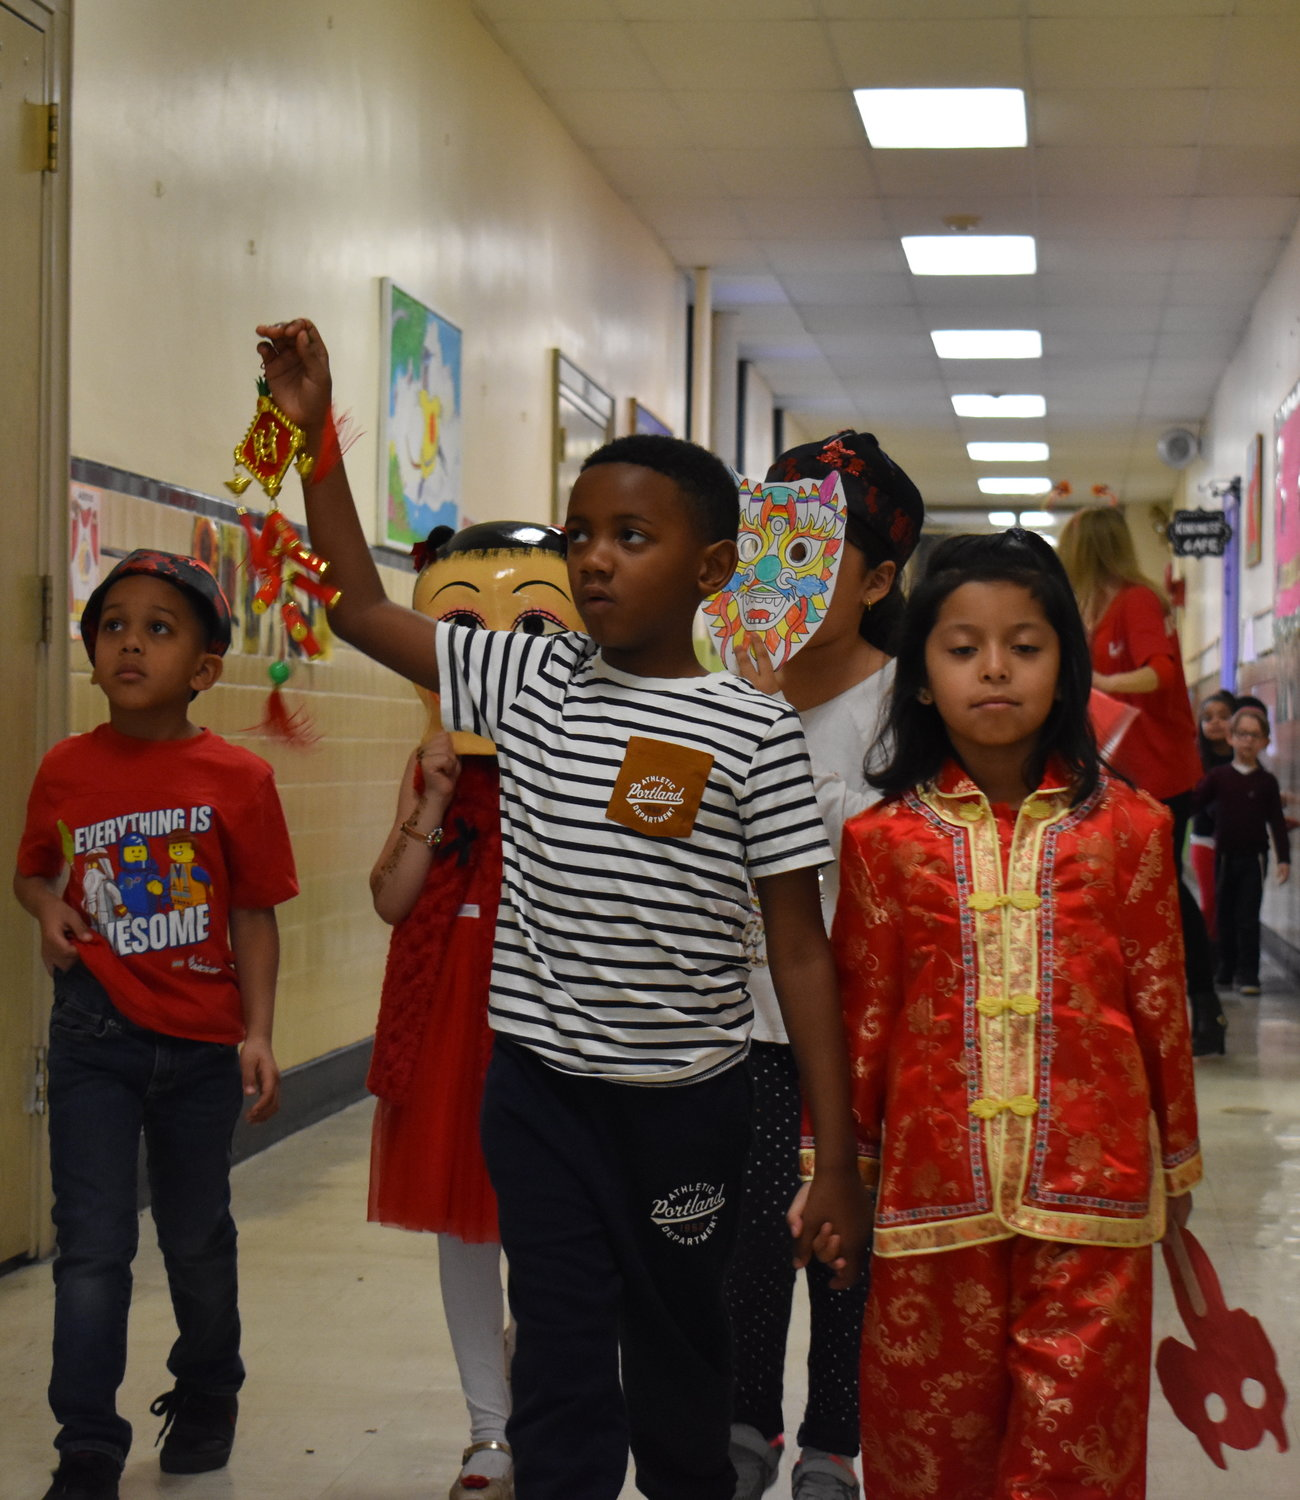 Kindergarten and first- graders with traditional decorations, hats, masks and outfits led the parade through the hallways. From left, kindergarteners Andrew Chandler and Seliena Sharhan, first-graders Ashton Gardner and Isabella Tenecela and kindergartener Angelina Segovia.